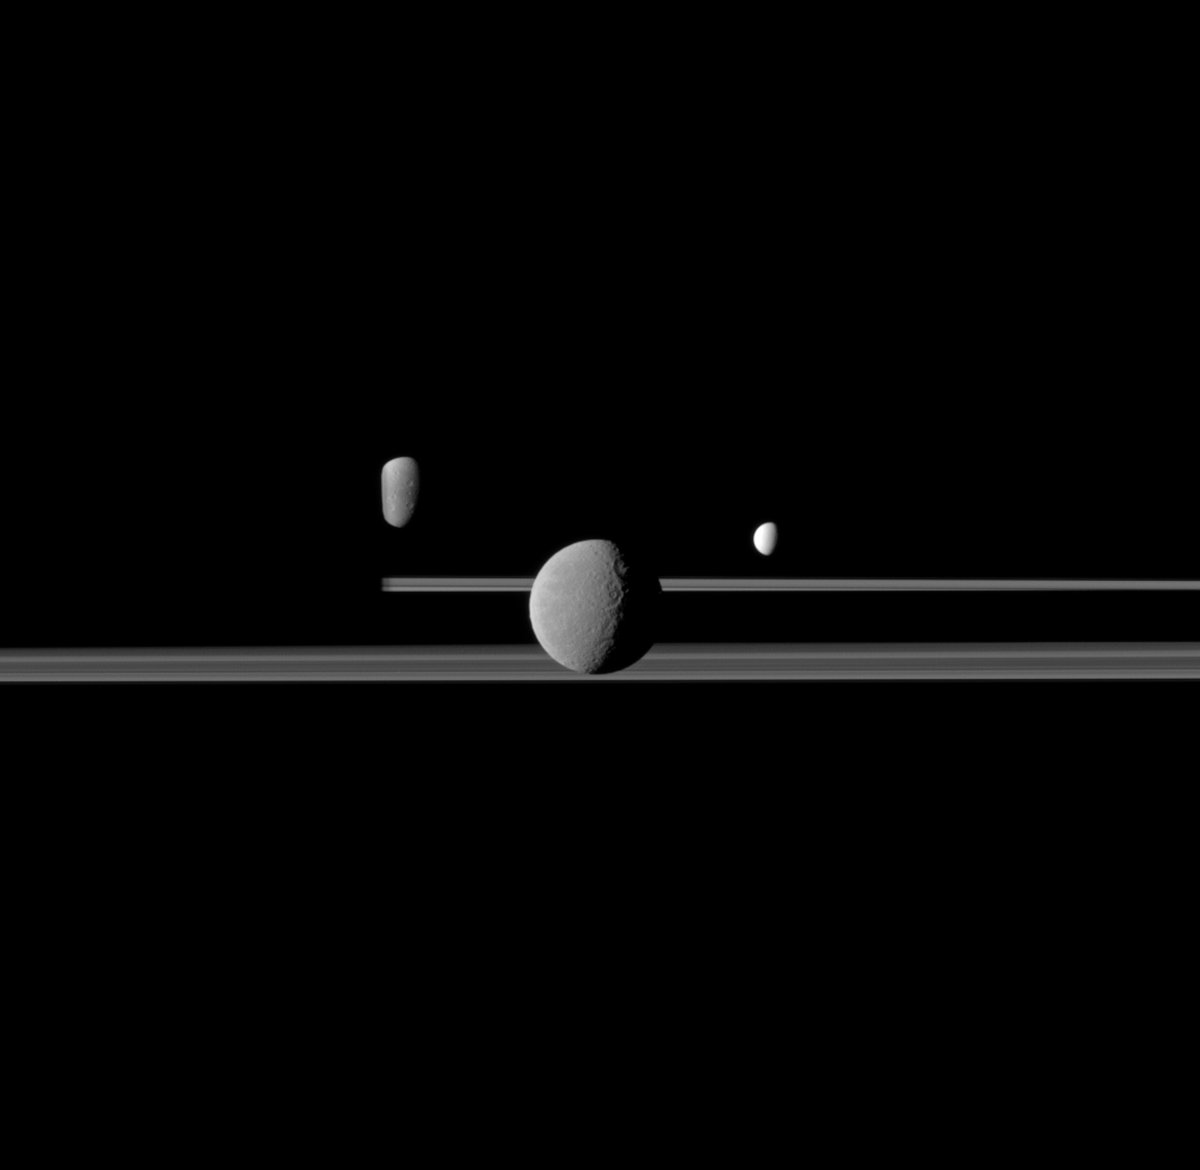 The Cassini spacecraft observes three of Saturn's moons set against the darkened night side of the planet. Rhea, Enceladus and Dione.